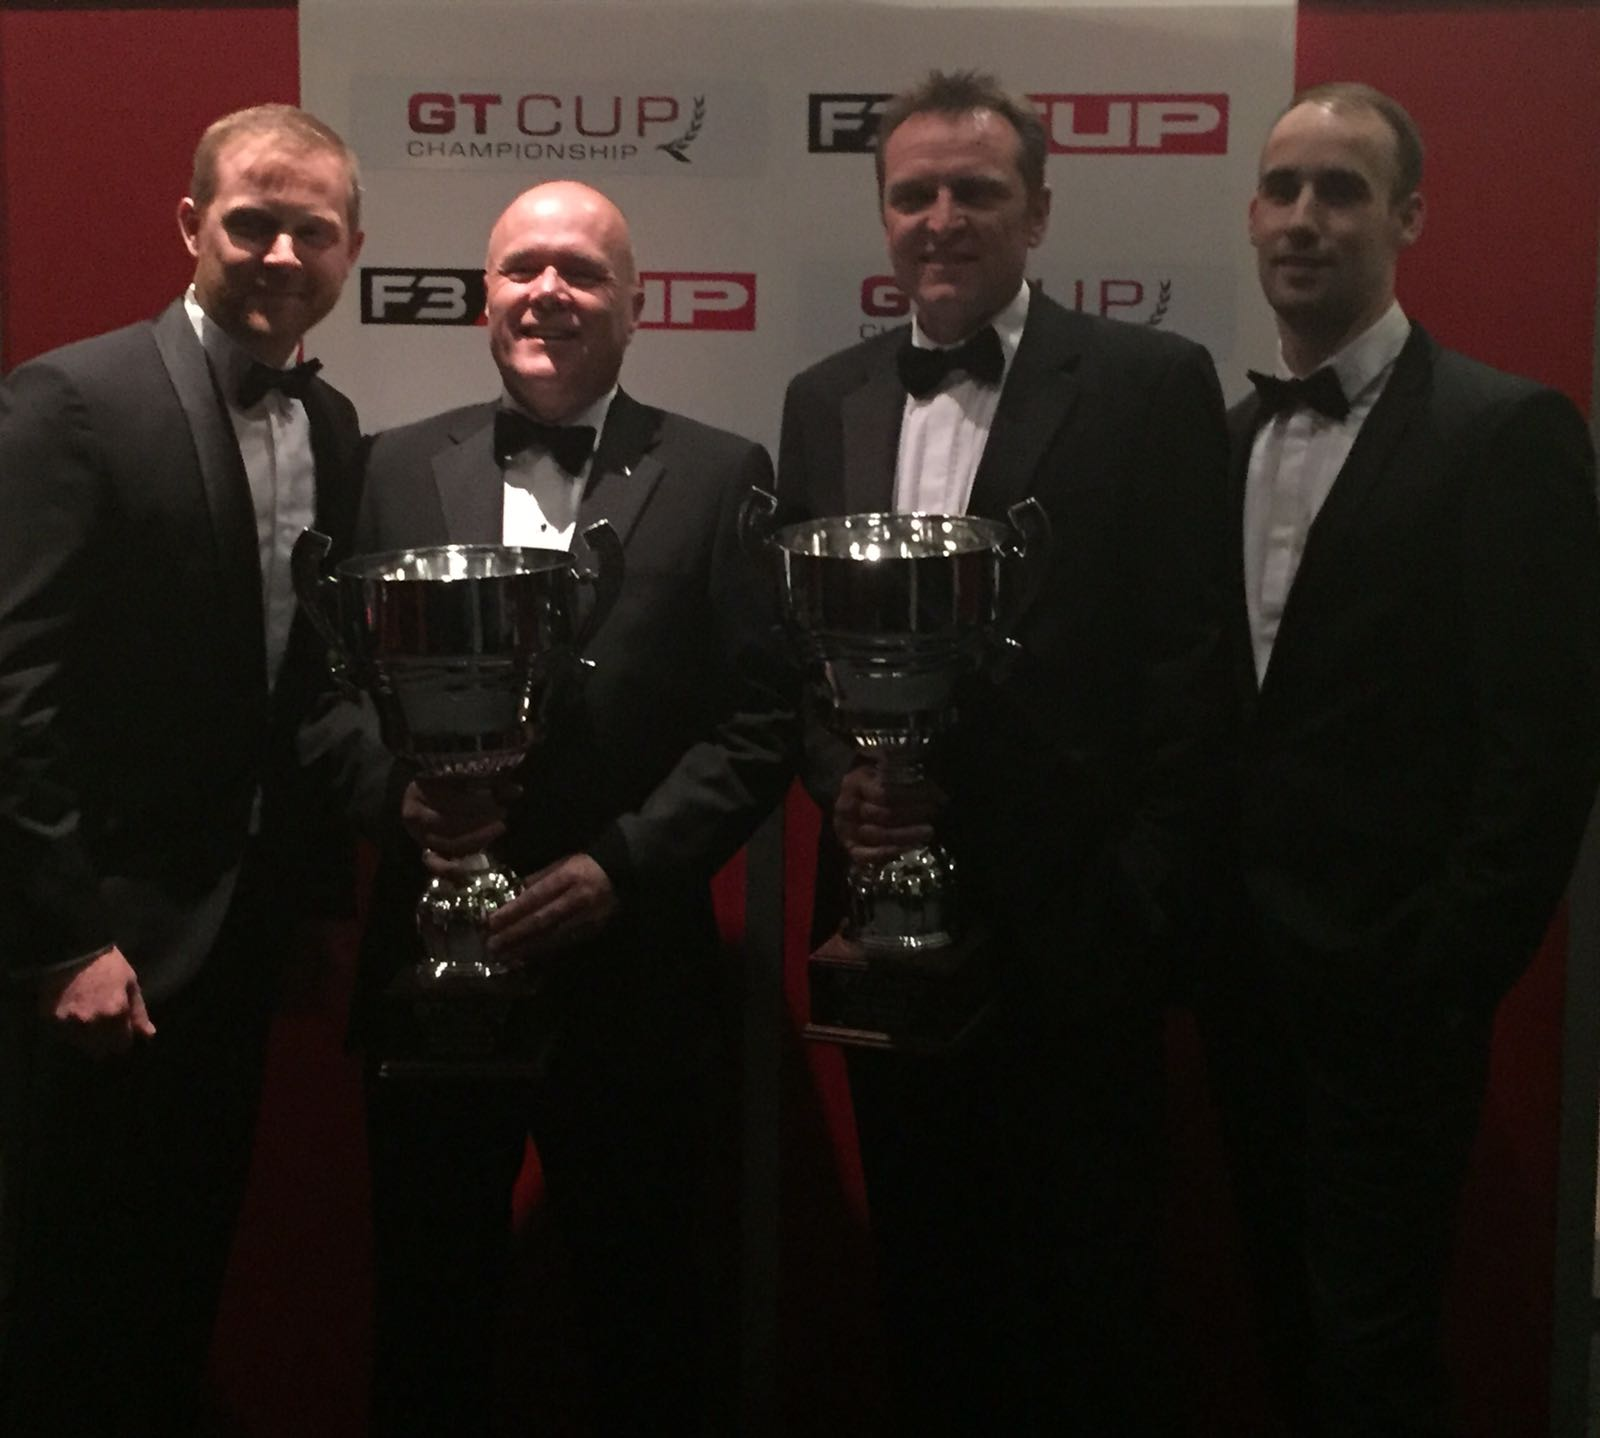 GT Cup Awards